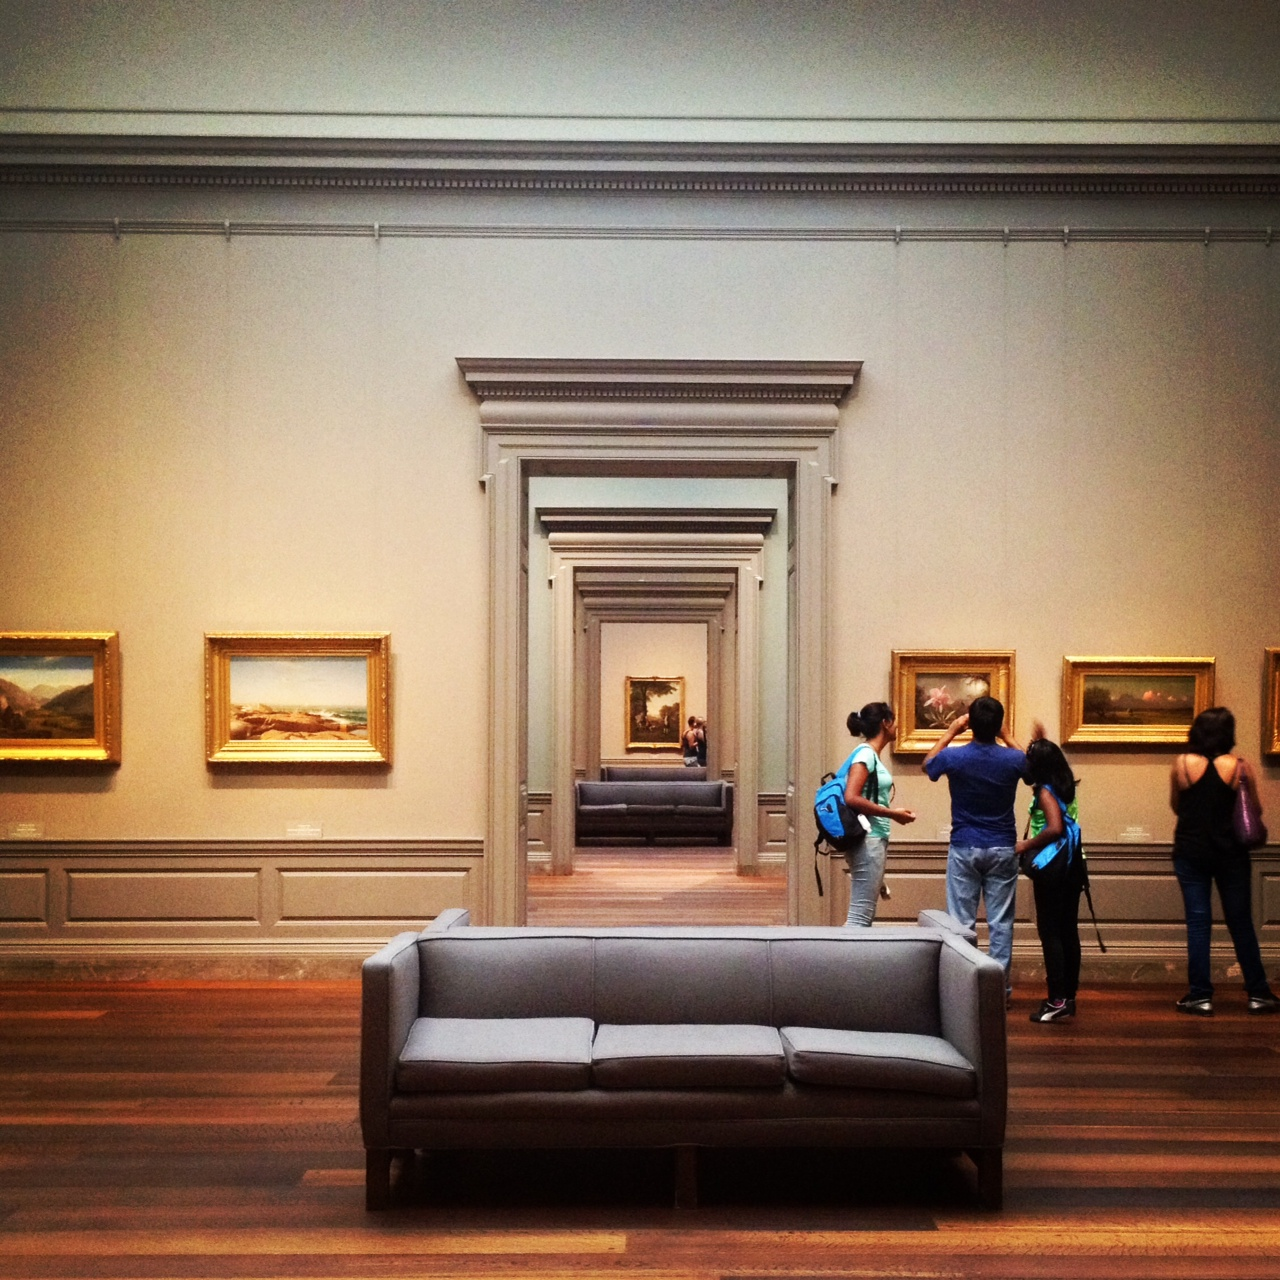 National Gallery of Art, West Wing